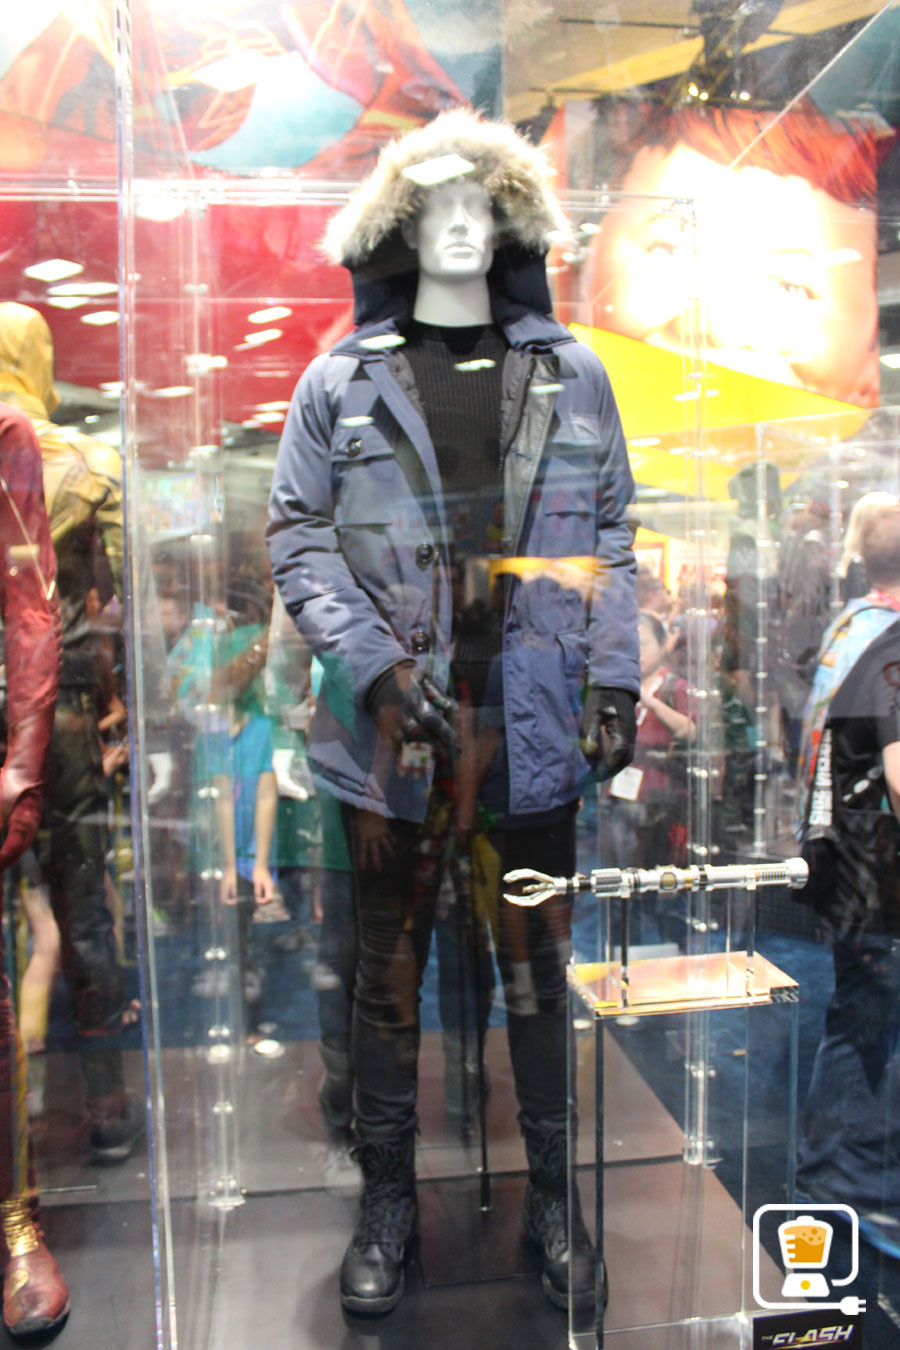 See Flash And Arrow's Amazing Costumes And Gadgets On Display At Comic-Con #32883